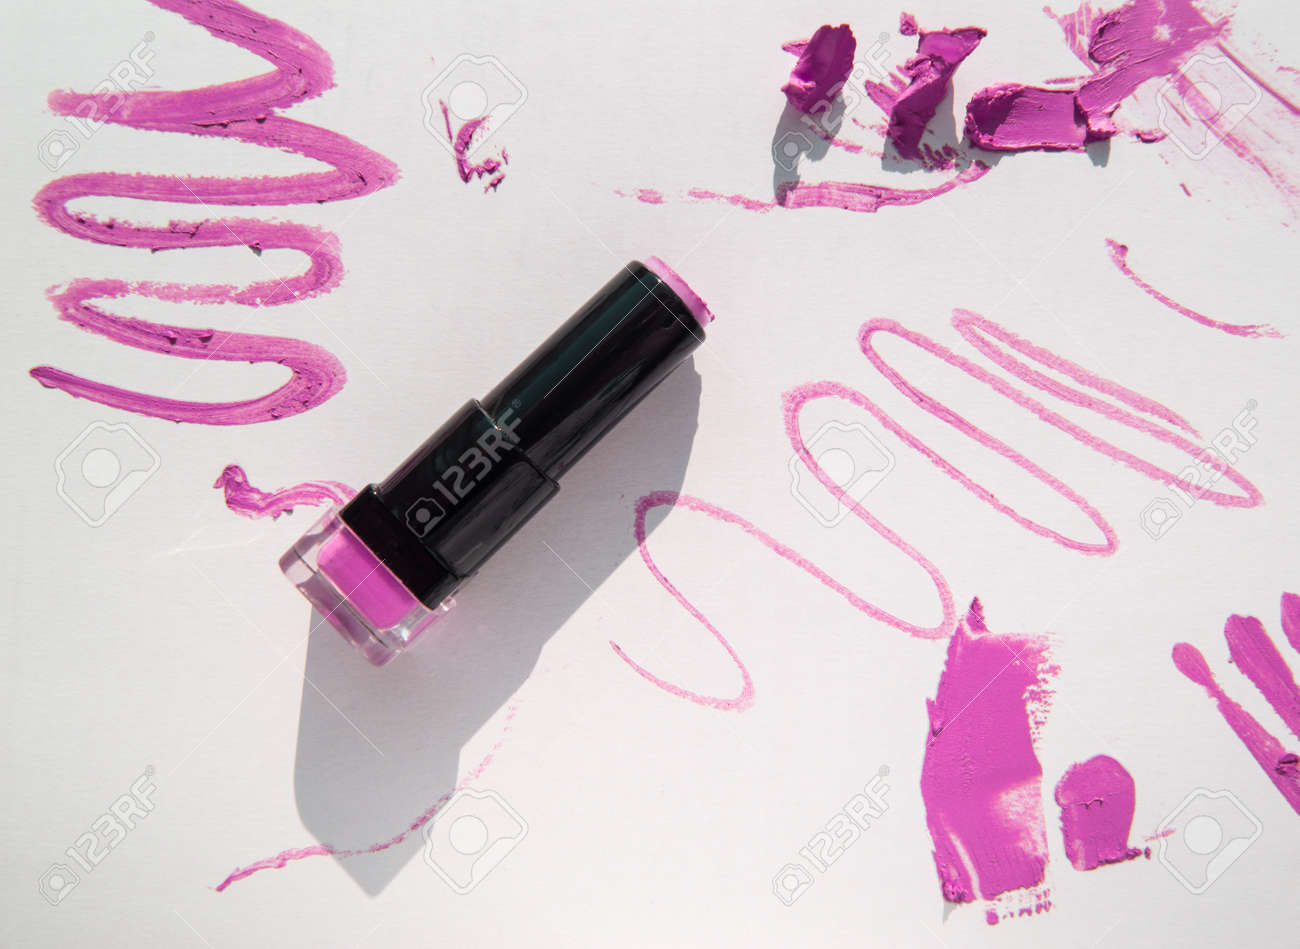 Black used tube of lipstick on a white background, various smudged lines and textures of pink, red lipstick, bright sunlight and shadows, beauty concept - 168250765